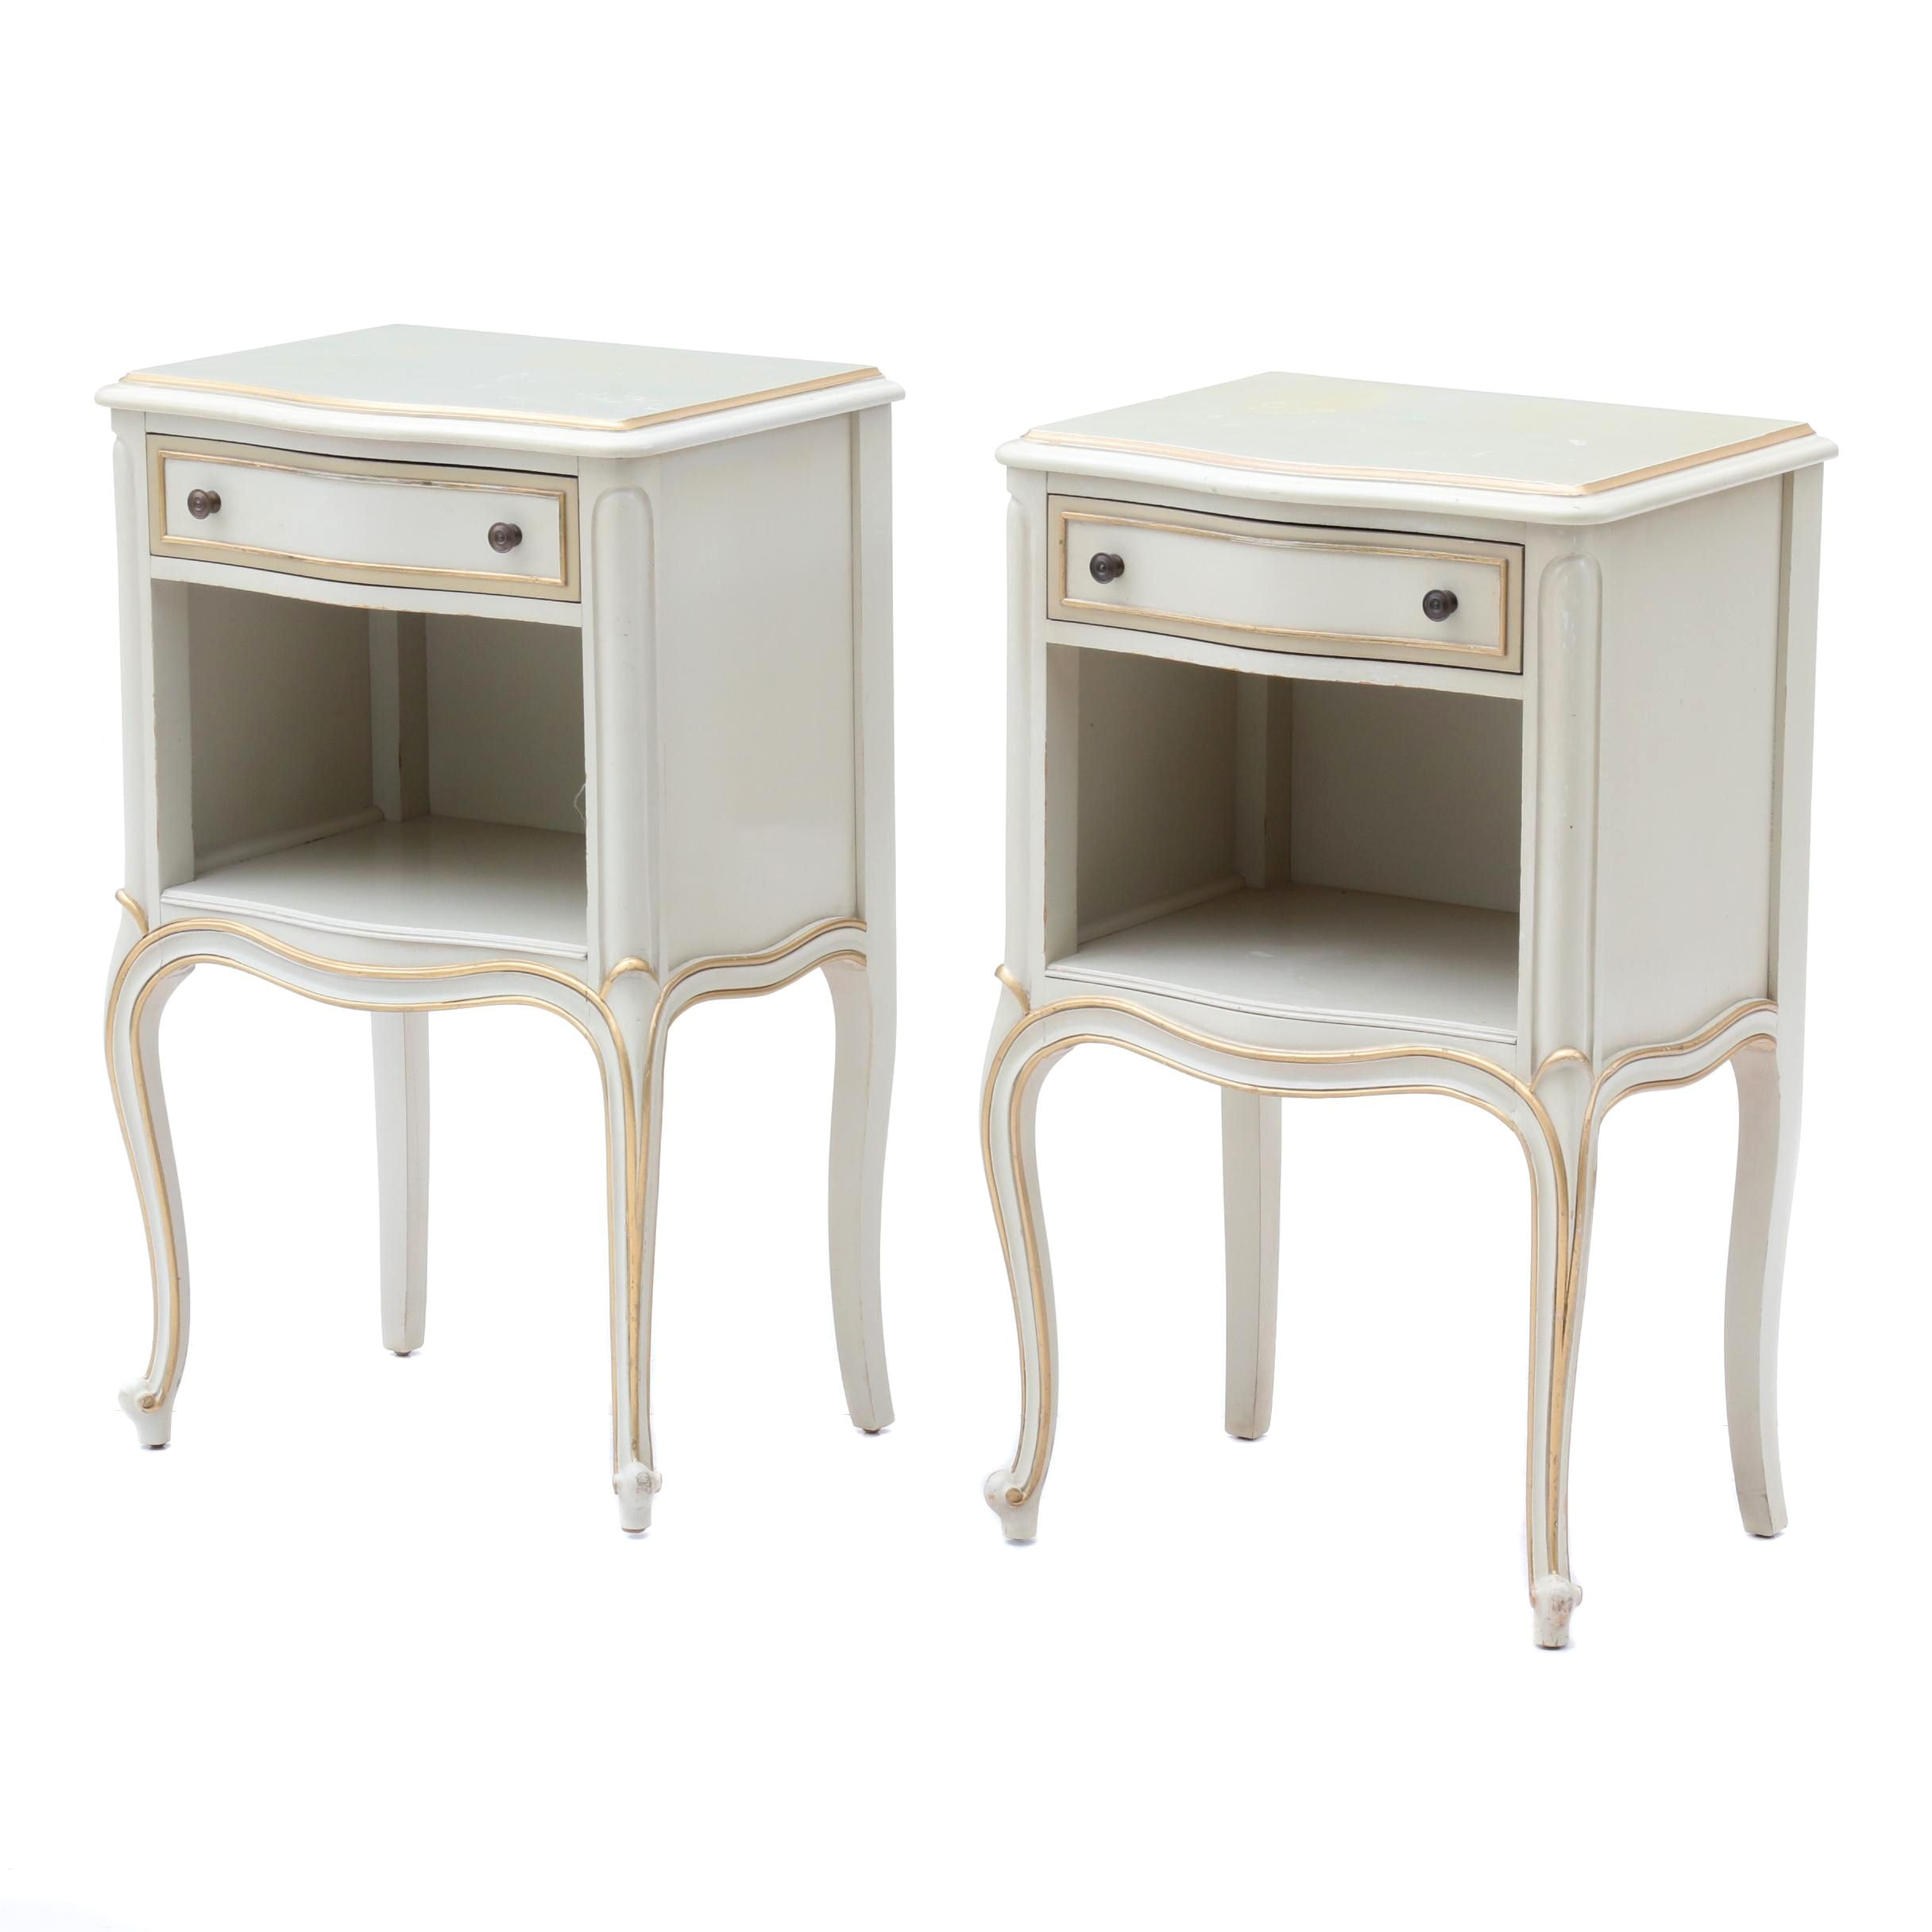 French Provincial Style Nightstands by Drexel, Mid 20th Century